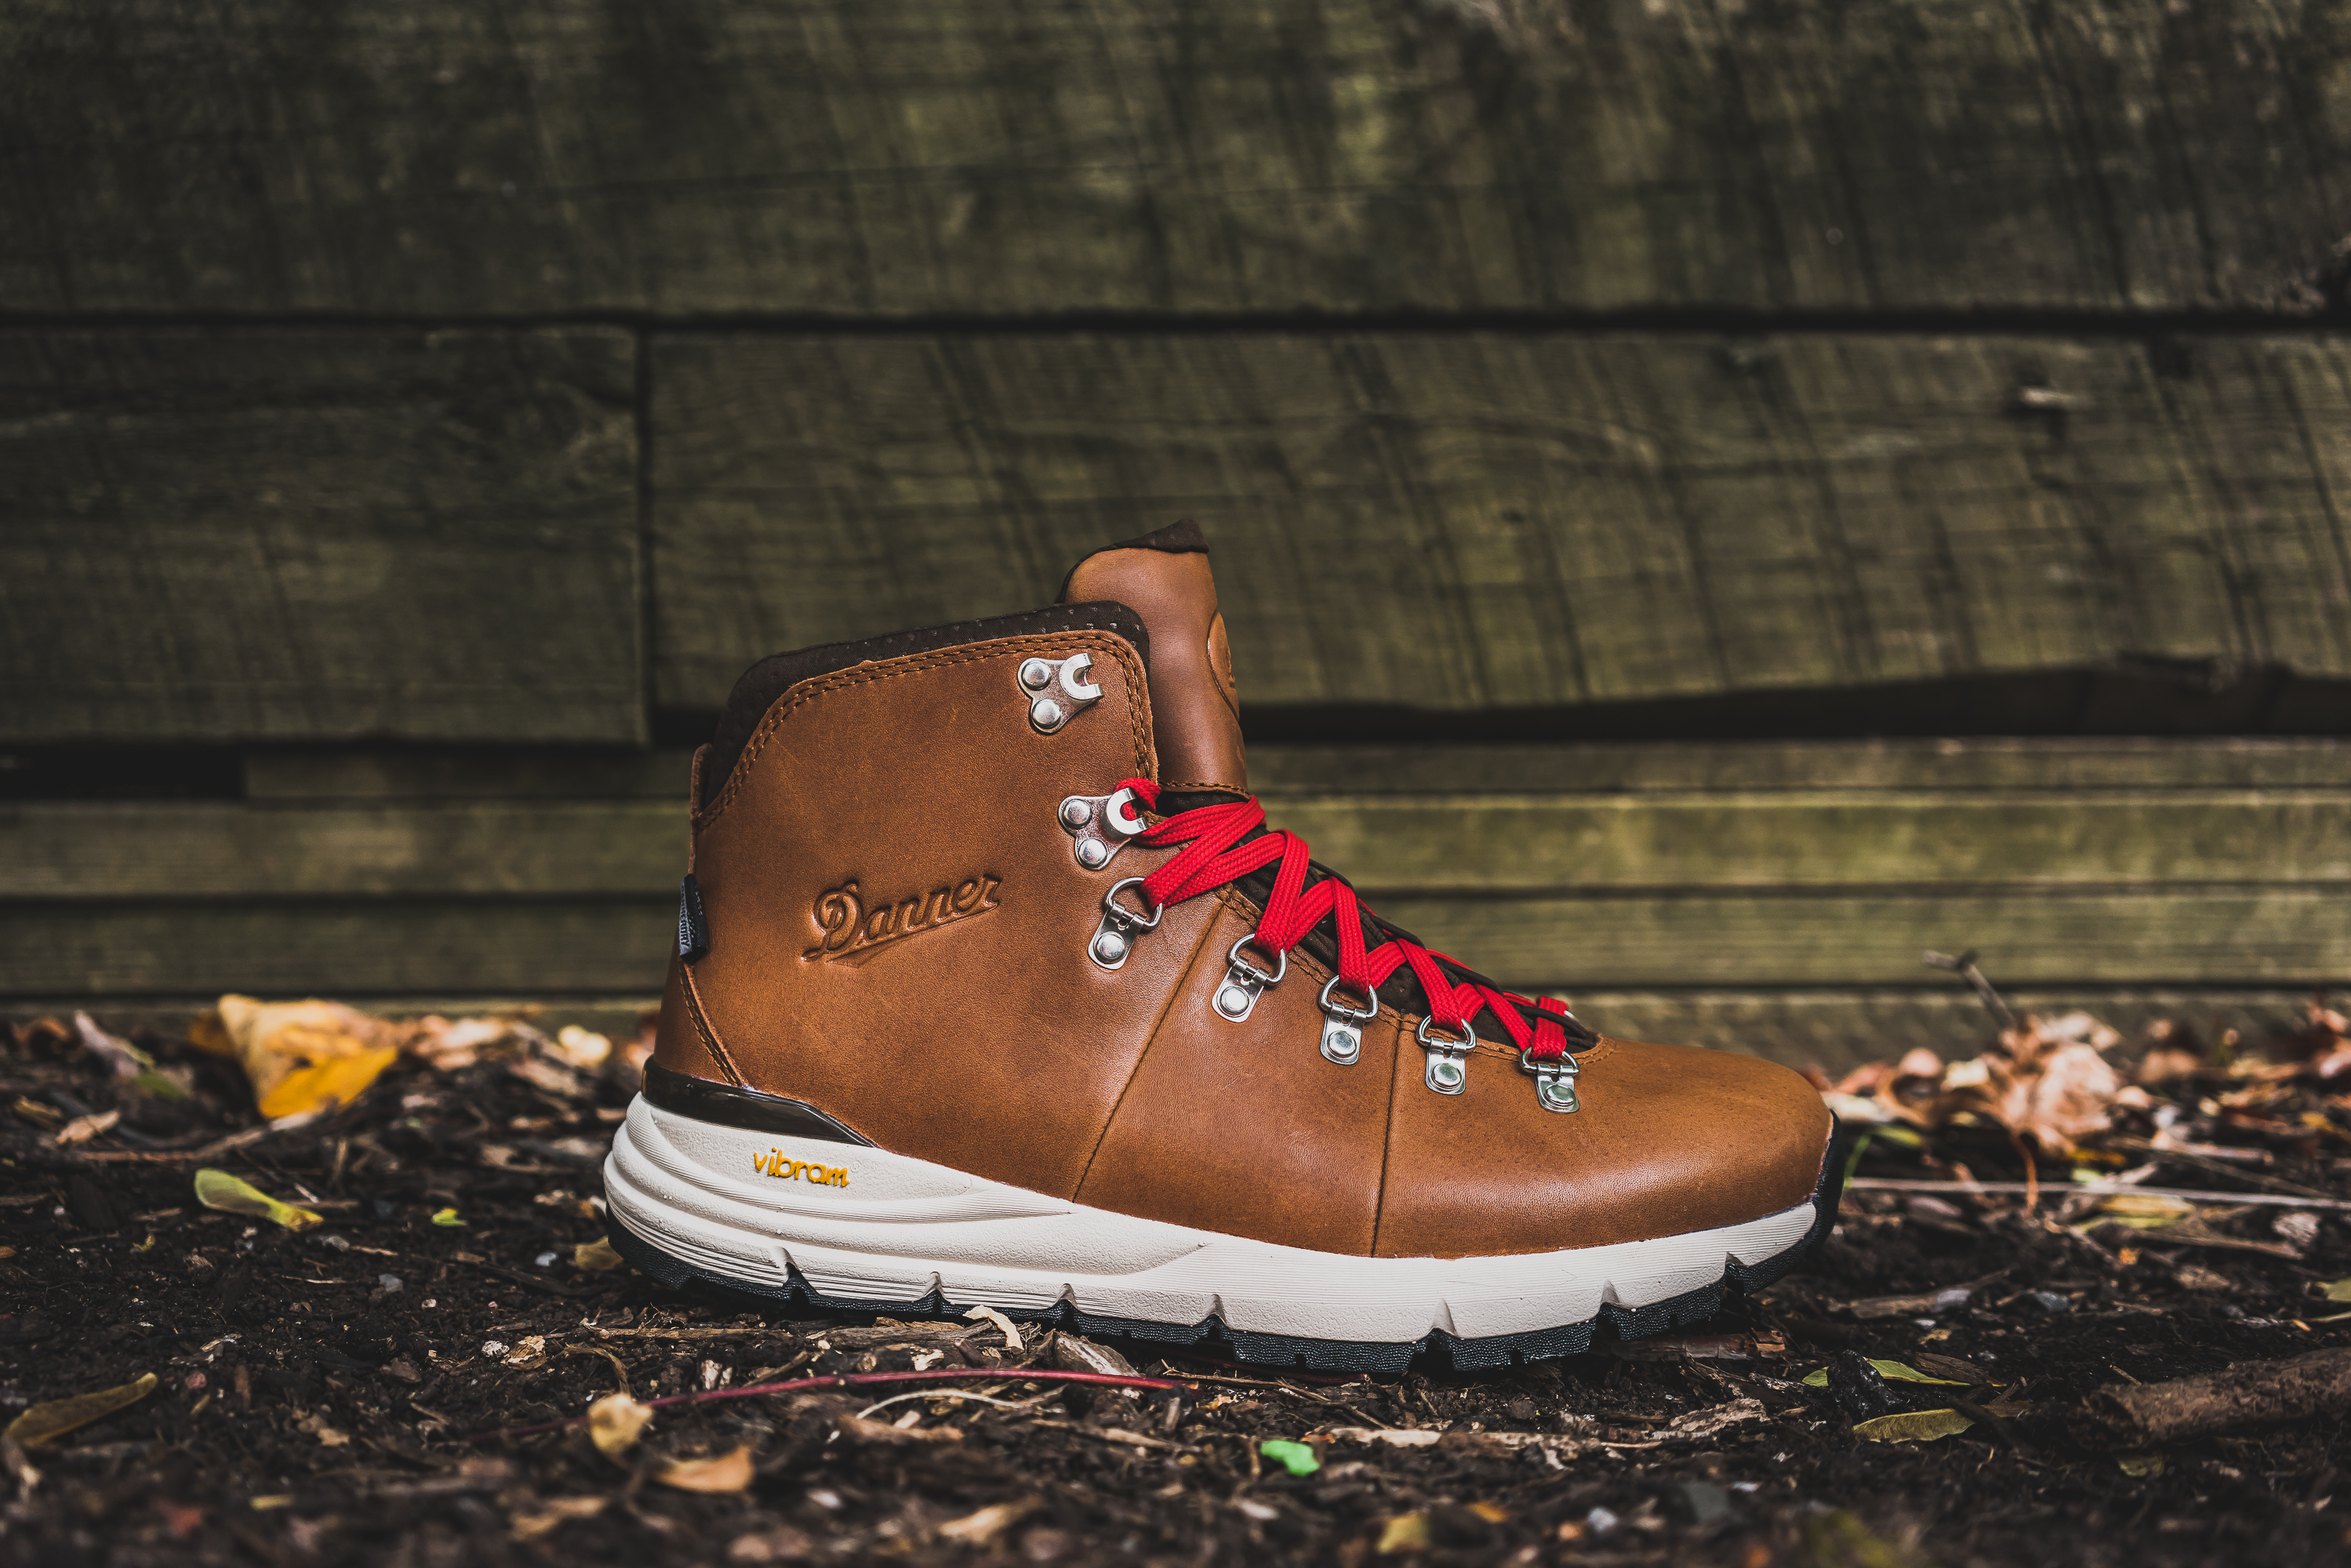 Danner Packer Shoes